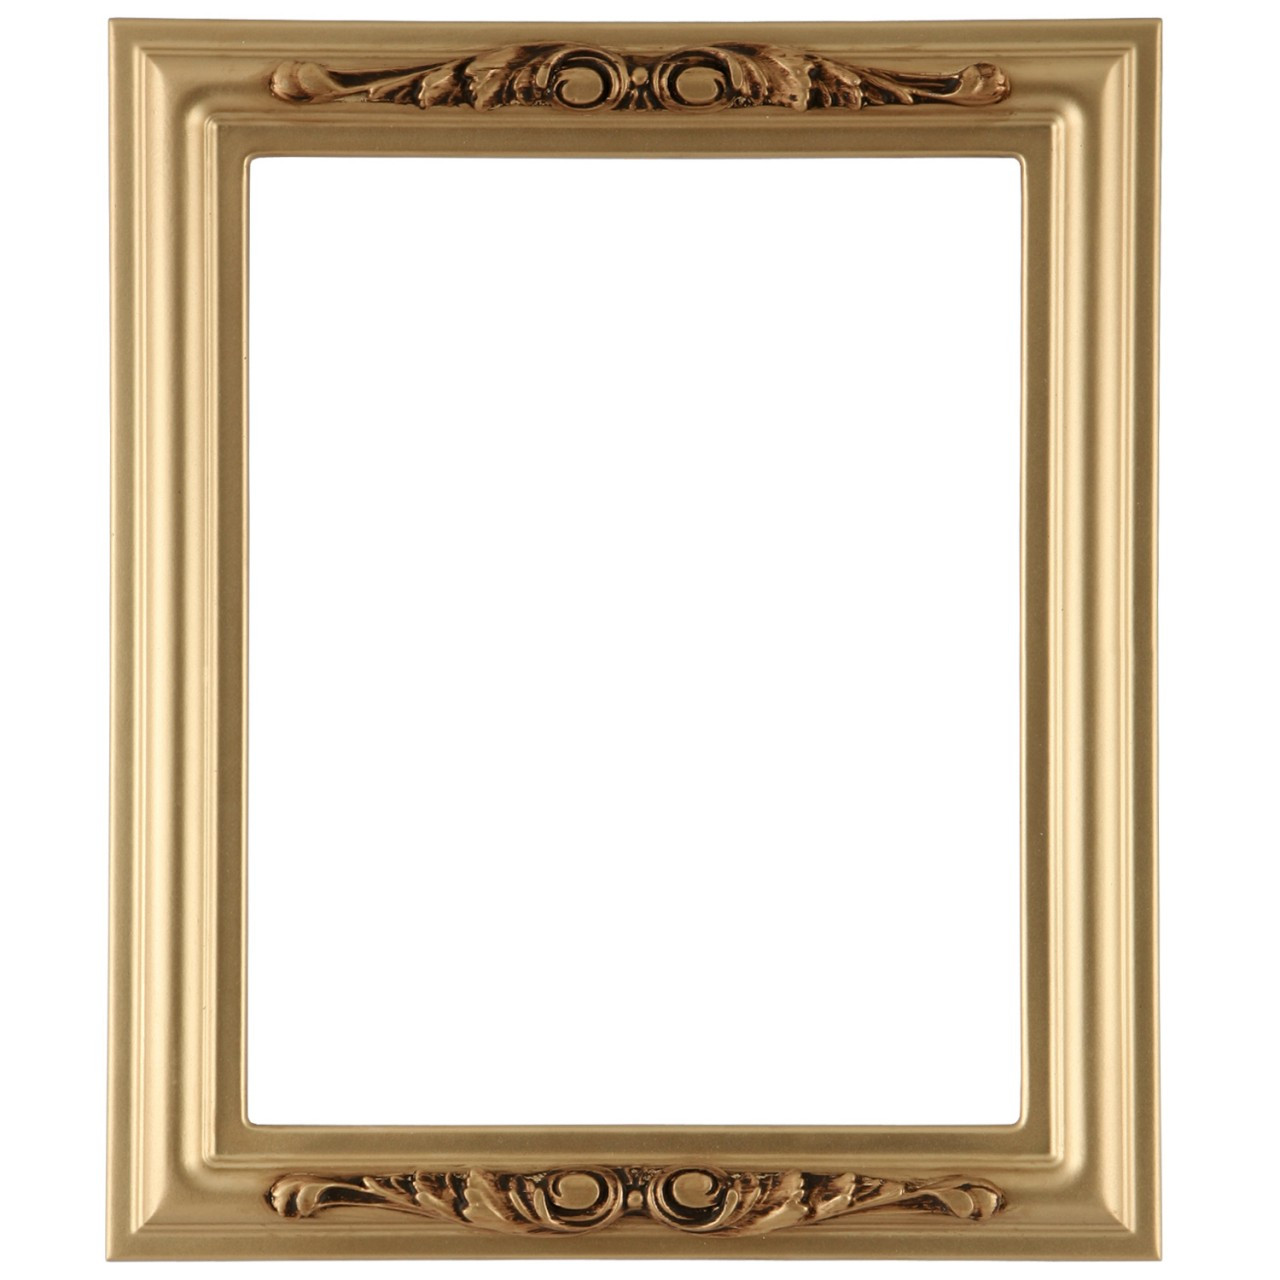 Acrylic Paint For Gold Frame